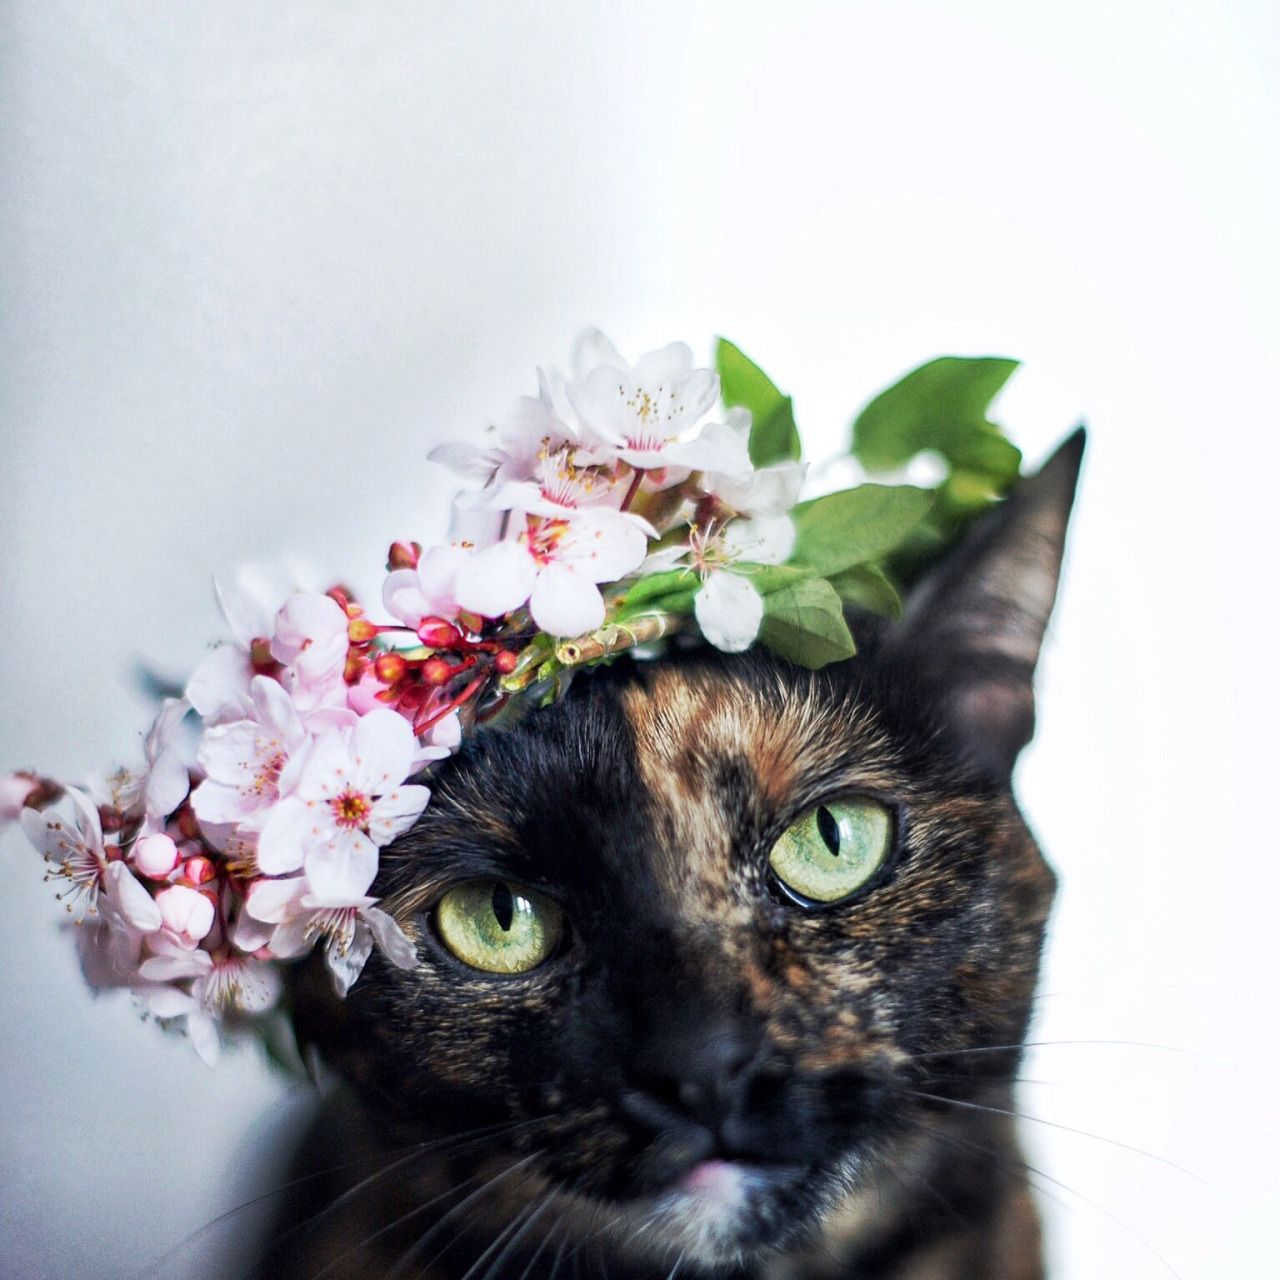 This looks like my cat i gave her a rose one time and she just the dainty squid flower crownsflower izmirmasajfo Image collections